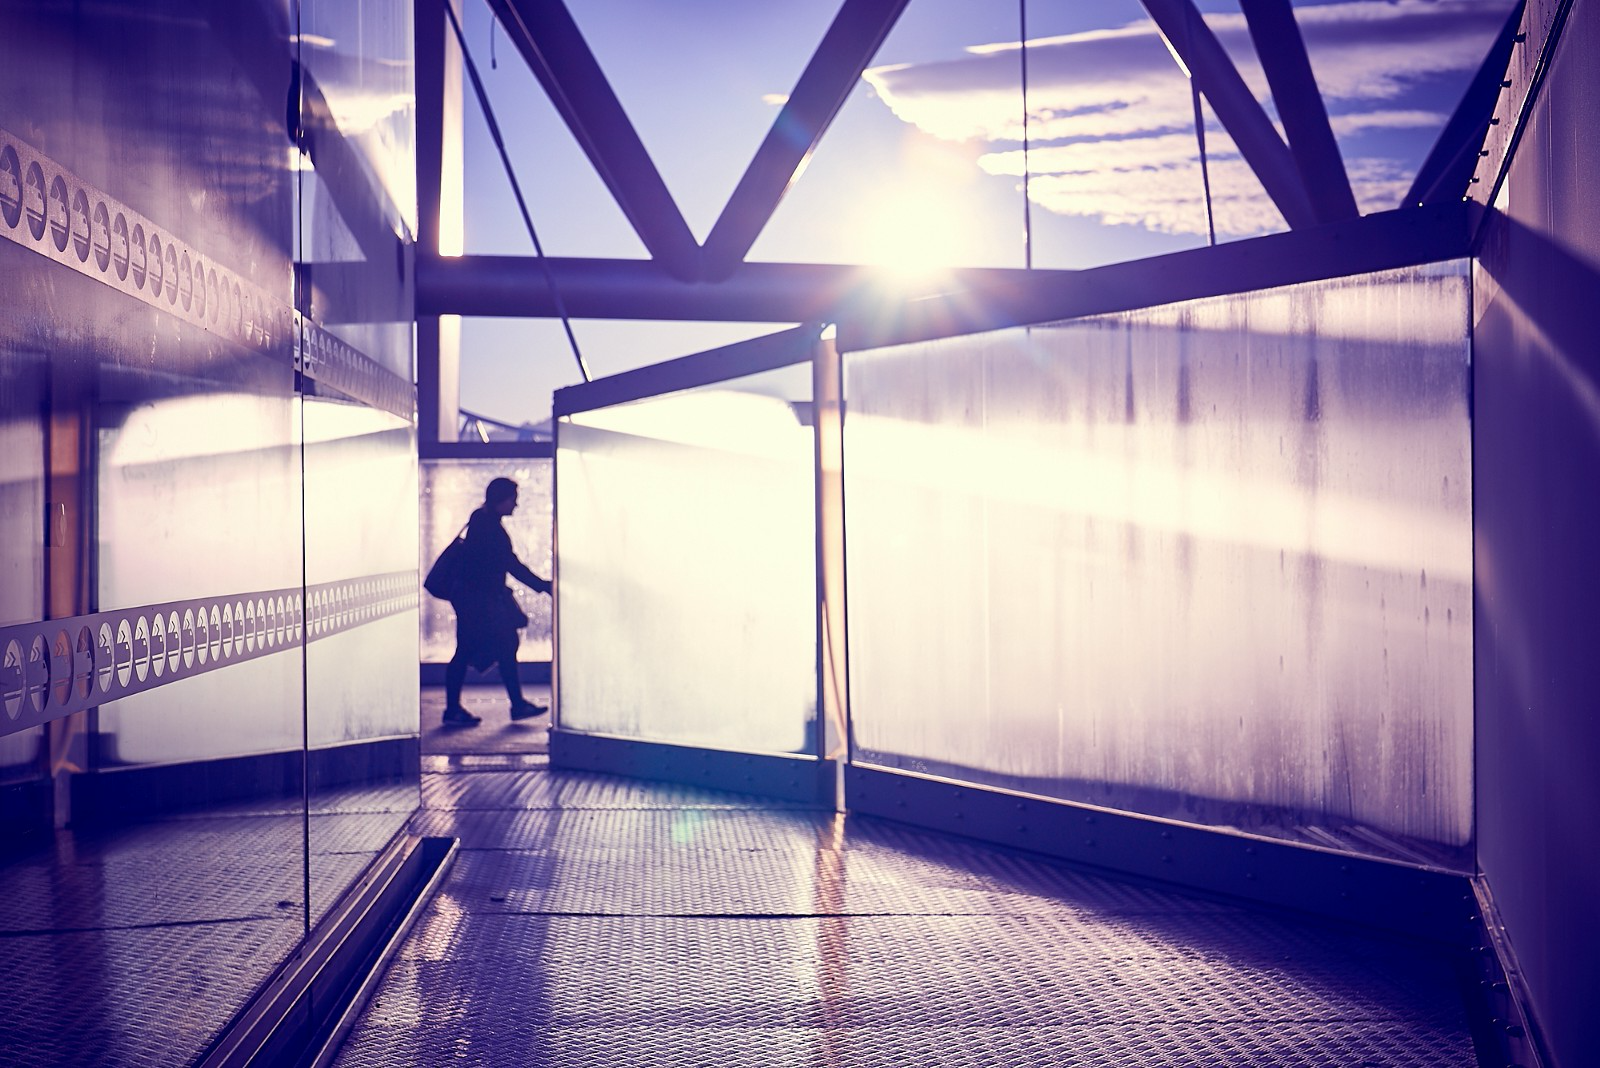 Image: the silhouette of a woman with a big handbag passing between opaque sheets of glass on a pedestrian bridge in Oslo